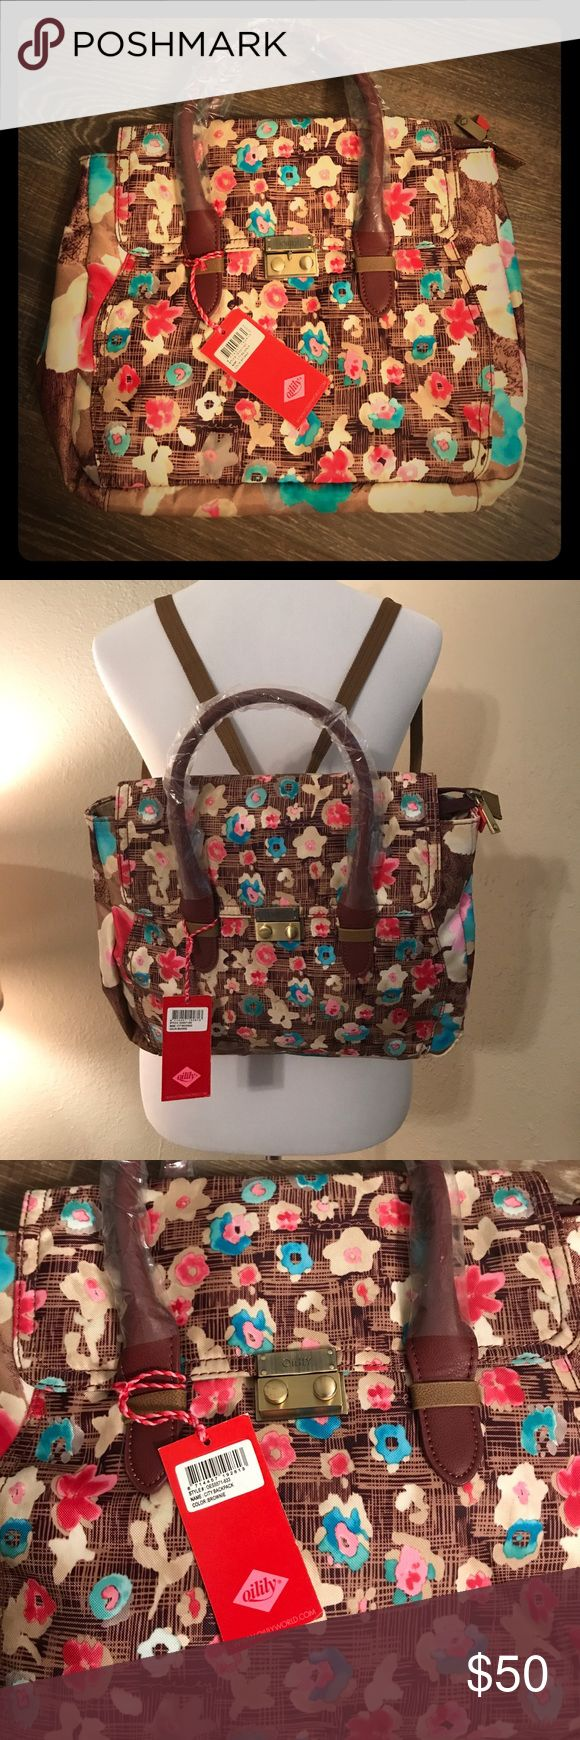 So versatile Oilily handbag/backpack! ADORABLE Oilily handback with handles, shoulder strap and backpack straps. Clasp to keep bag closed. So versatile and so perfect for any occasion! 3 inside pockets- 1 is zippered. NWT in perfect condition. This bag is too cute!! 🎉 Oilily Bags